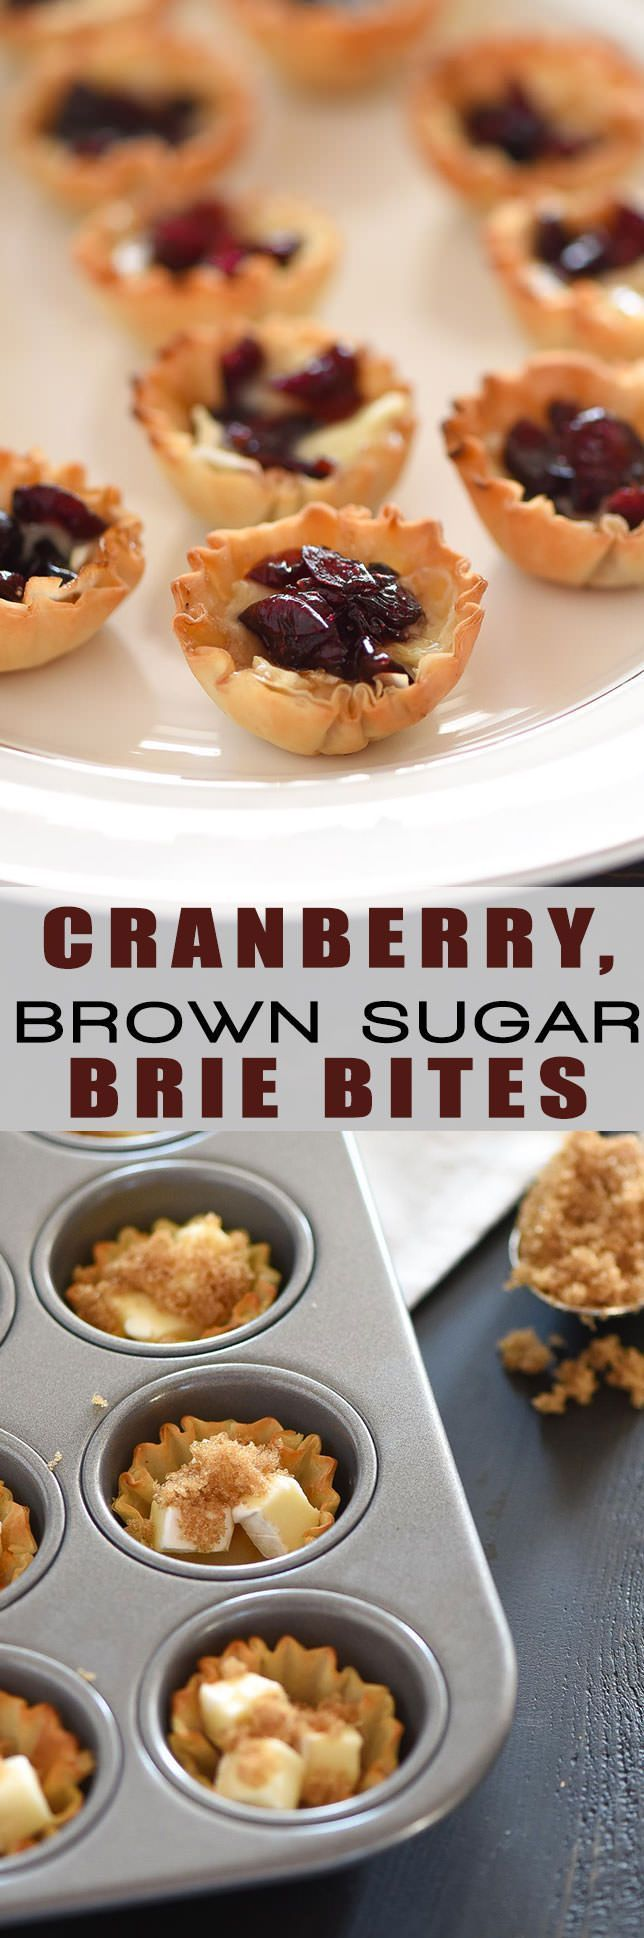 Cranberry, Brown Sugar Brie Bites are the perfect party appetizer. They are sweet, savory and are whipped together in under 20 minutes!